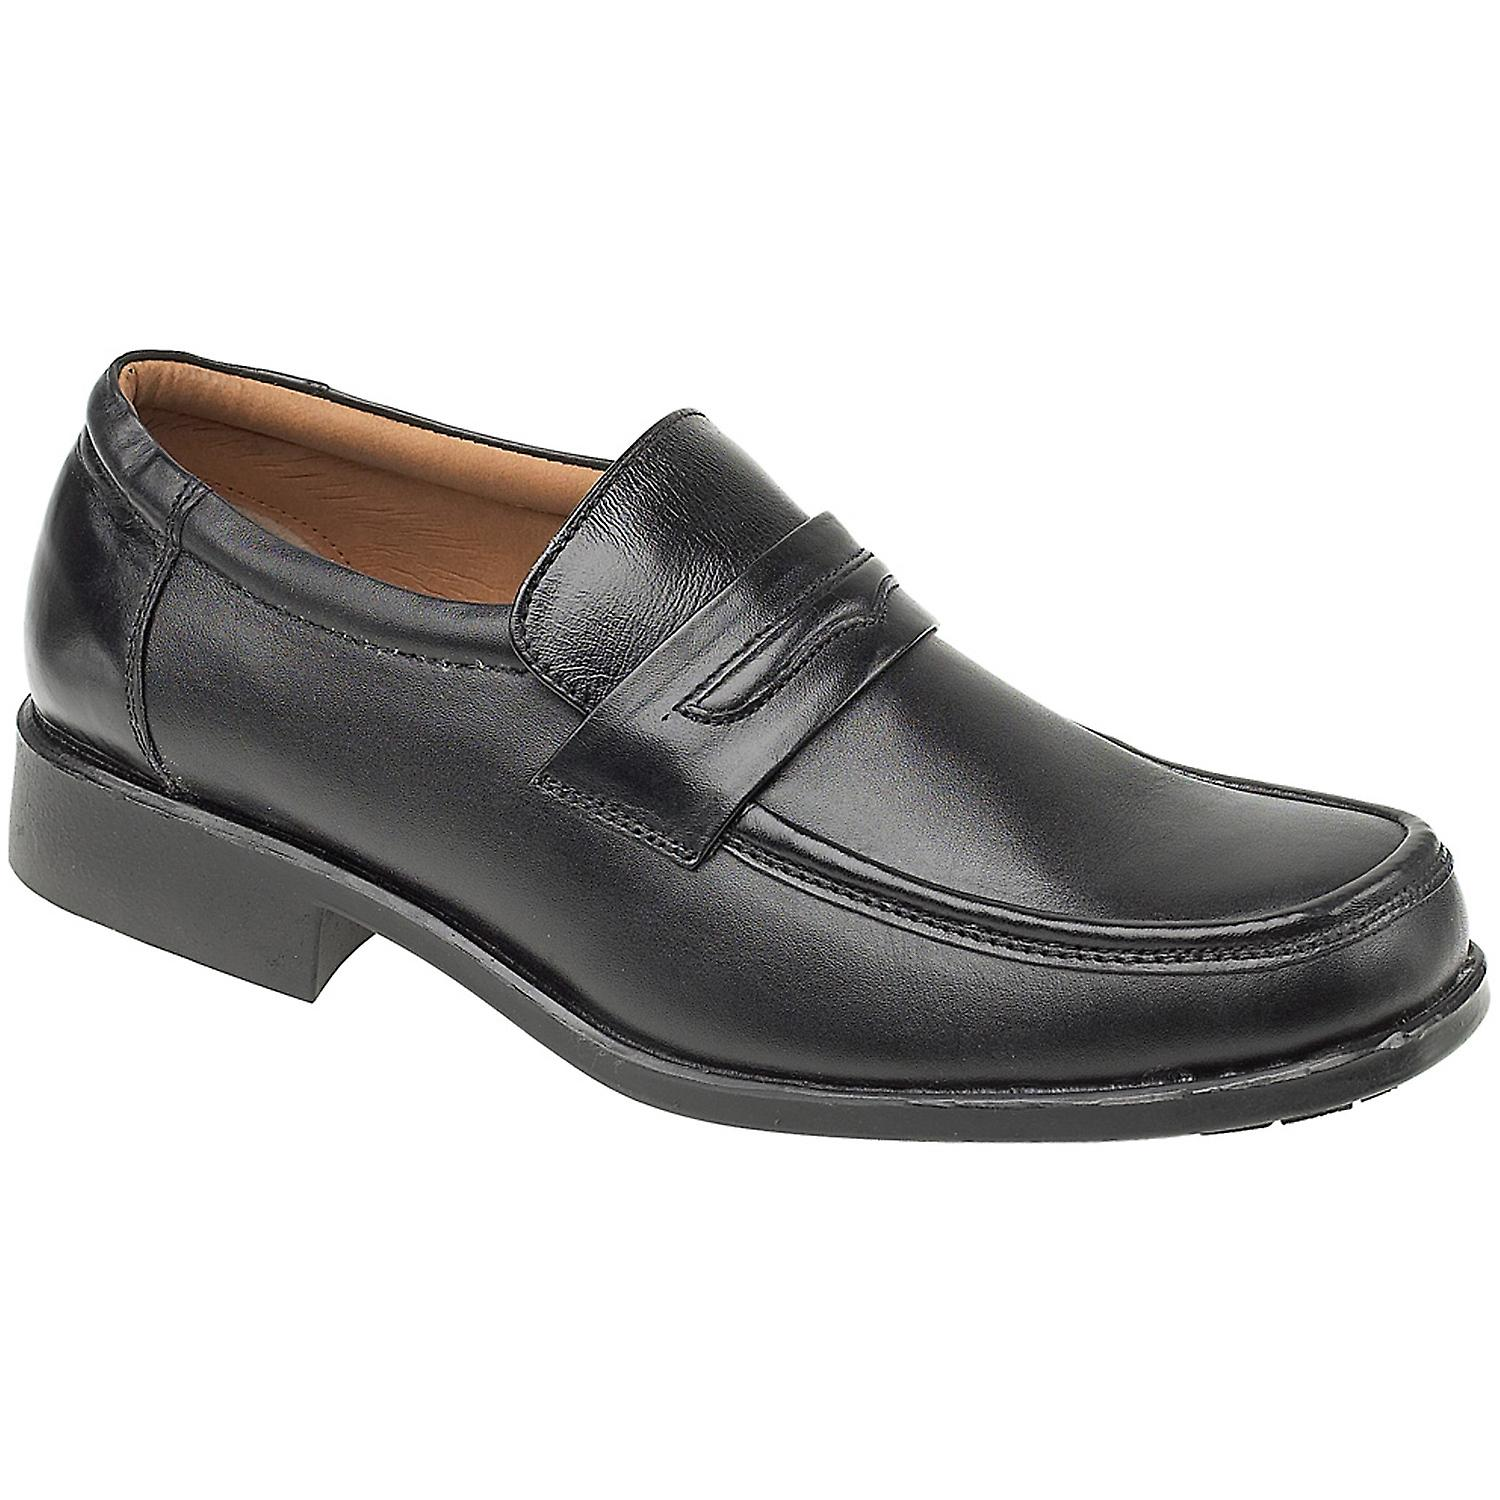 Amblers Leather Manchester Leather Amblers Loafer / Mens Shoes 902a03